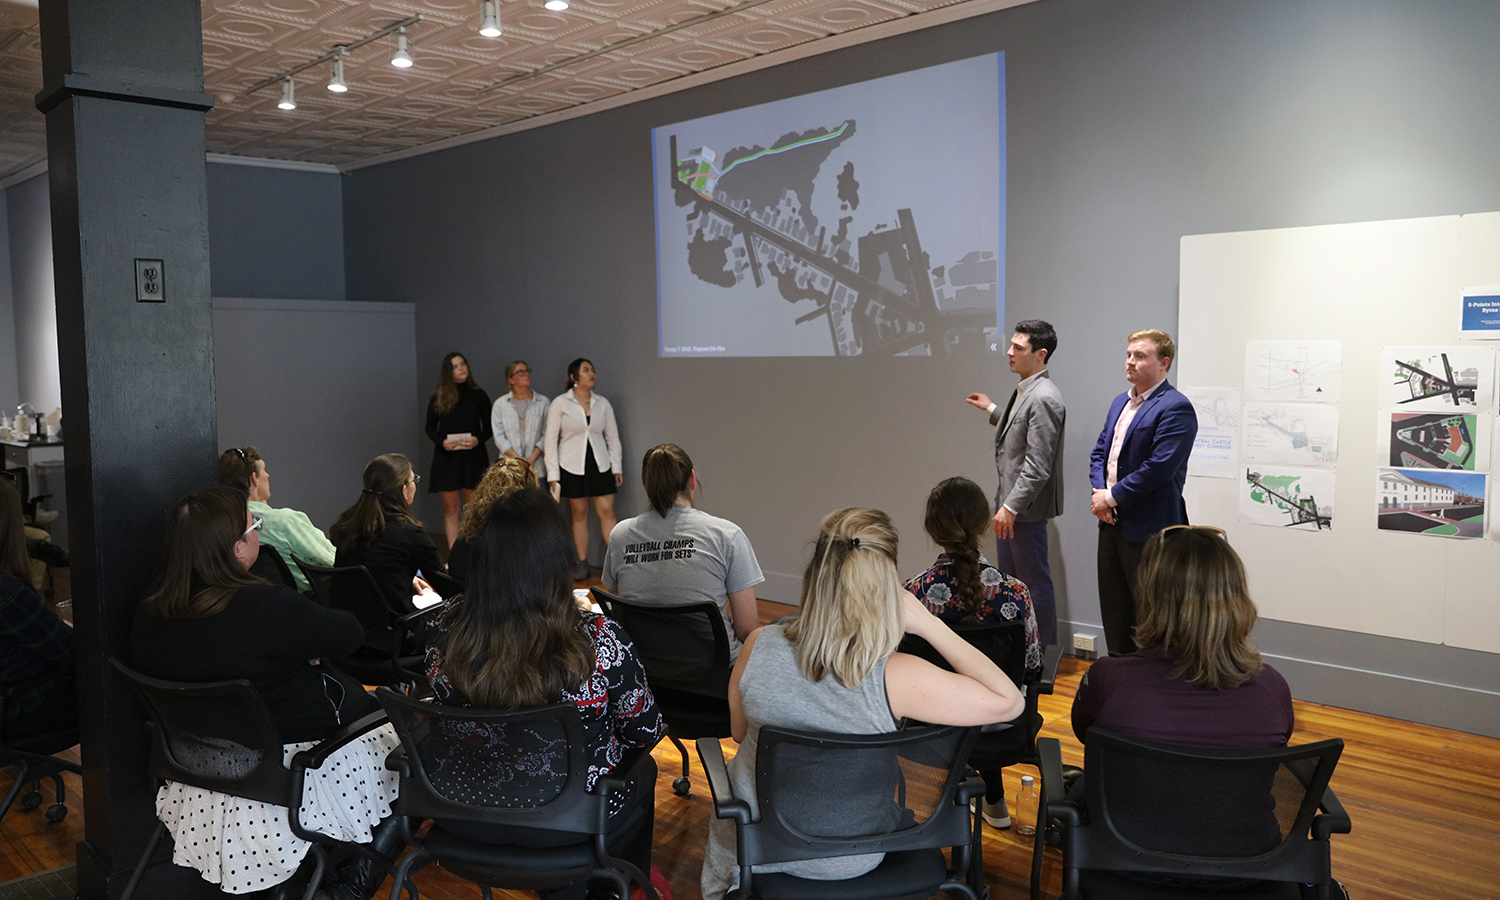 Students present a sustainability plan for the Castle Creek area ofGeneva as part of their Sustainable Community Development Capstone in the Bozzuto Center for Entrepreneurship.